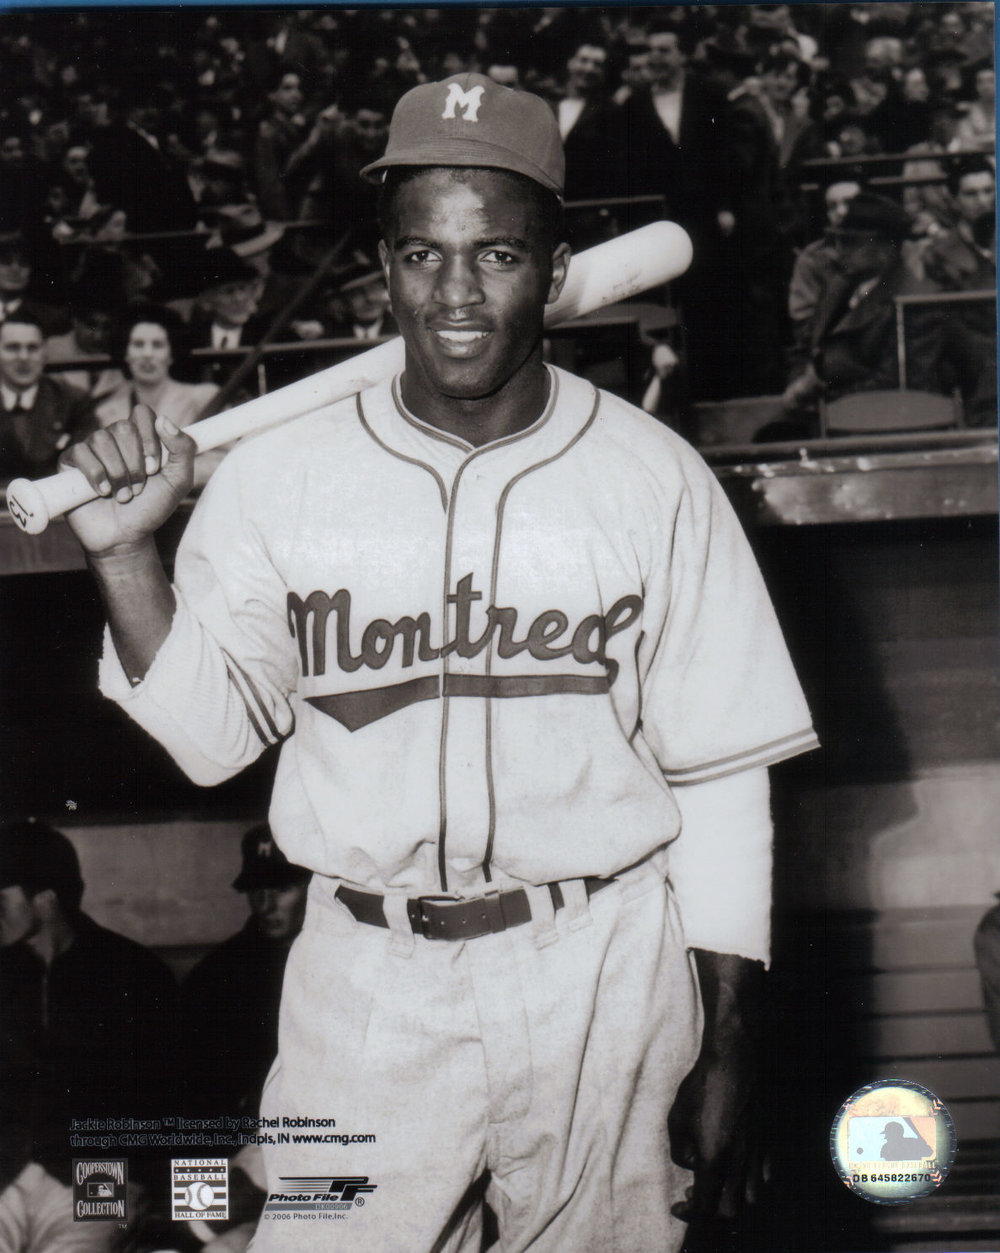 Prior to breaking Major League Baseball's colour barrier, Jackie Robinson played the 1946 season with the International League's Montreal Royals.